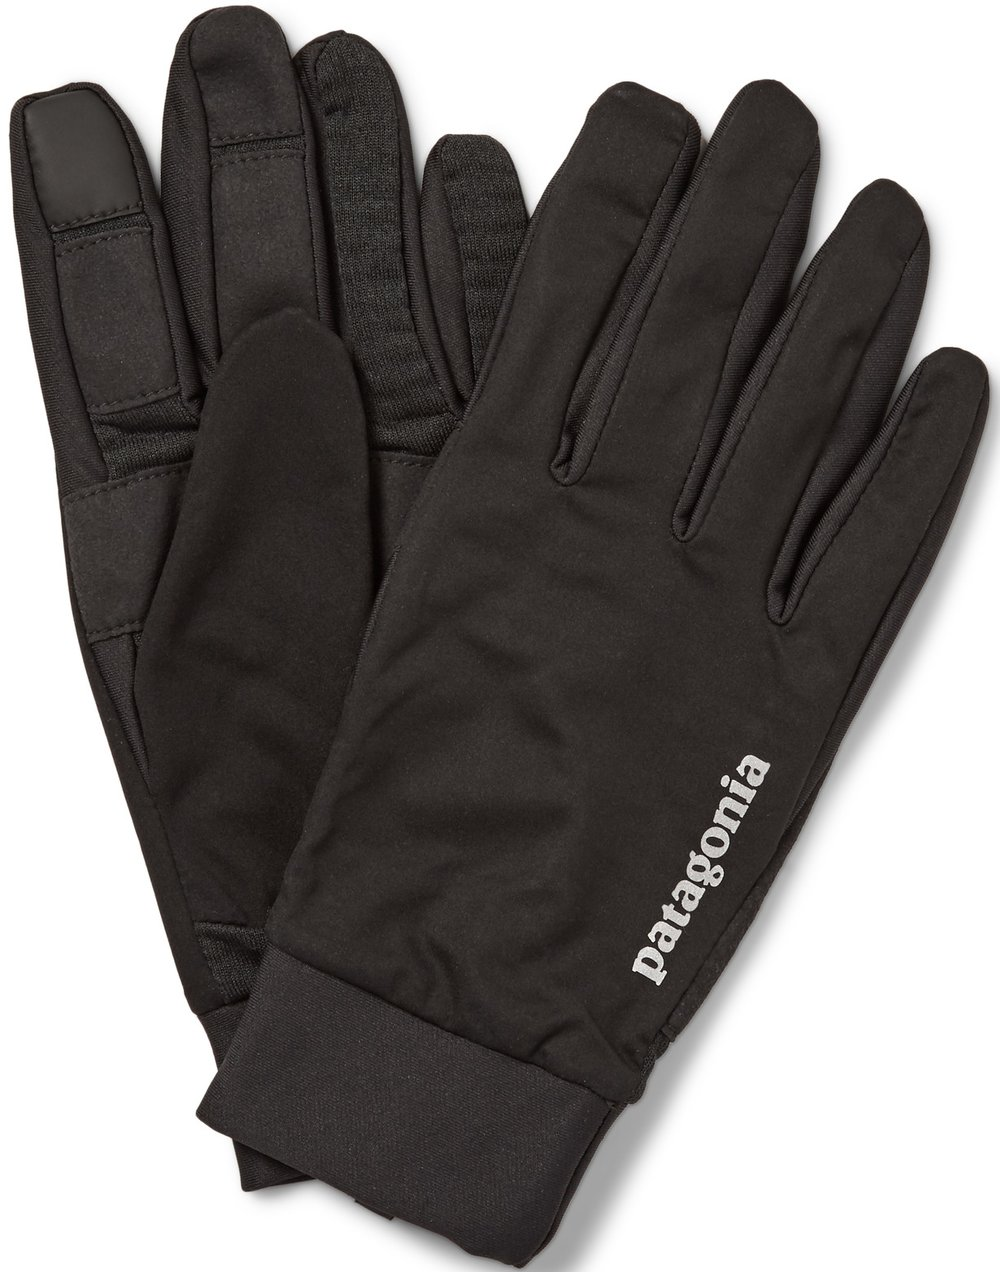 Patagonia Wind Shield Stretch-Jersey Gloves at Mr. Porter, $50